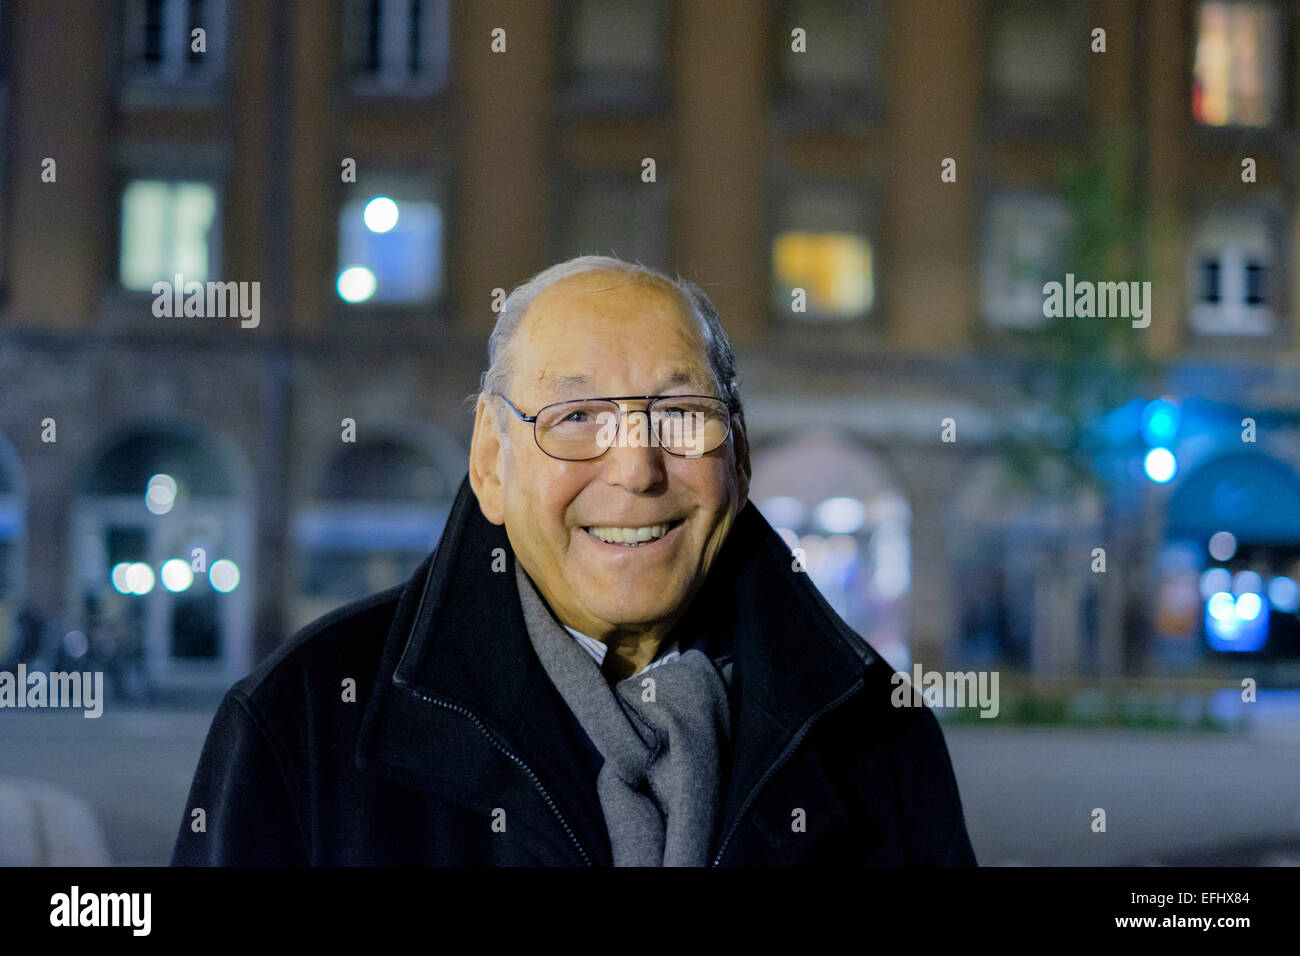 Smiling elderly man 80s portrait at night - Stock Image